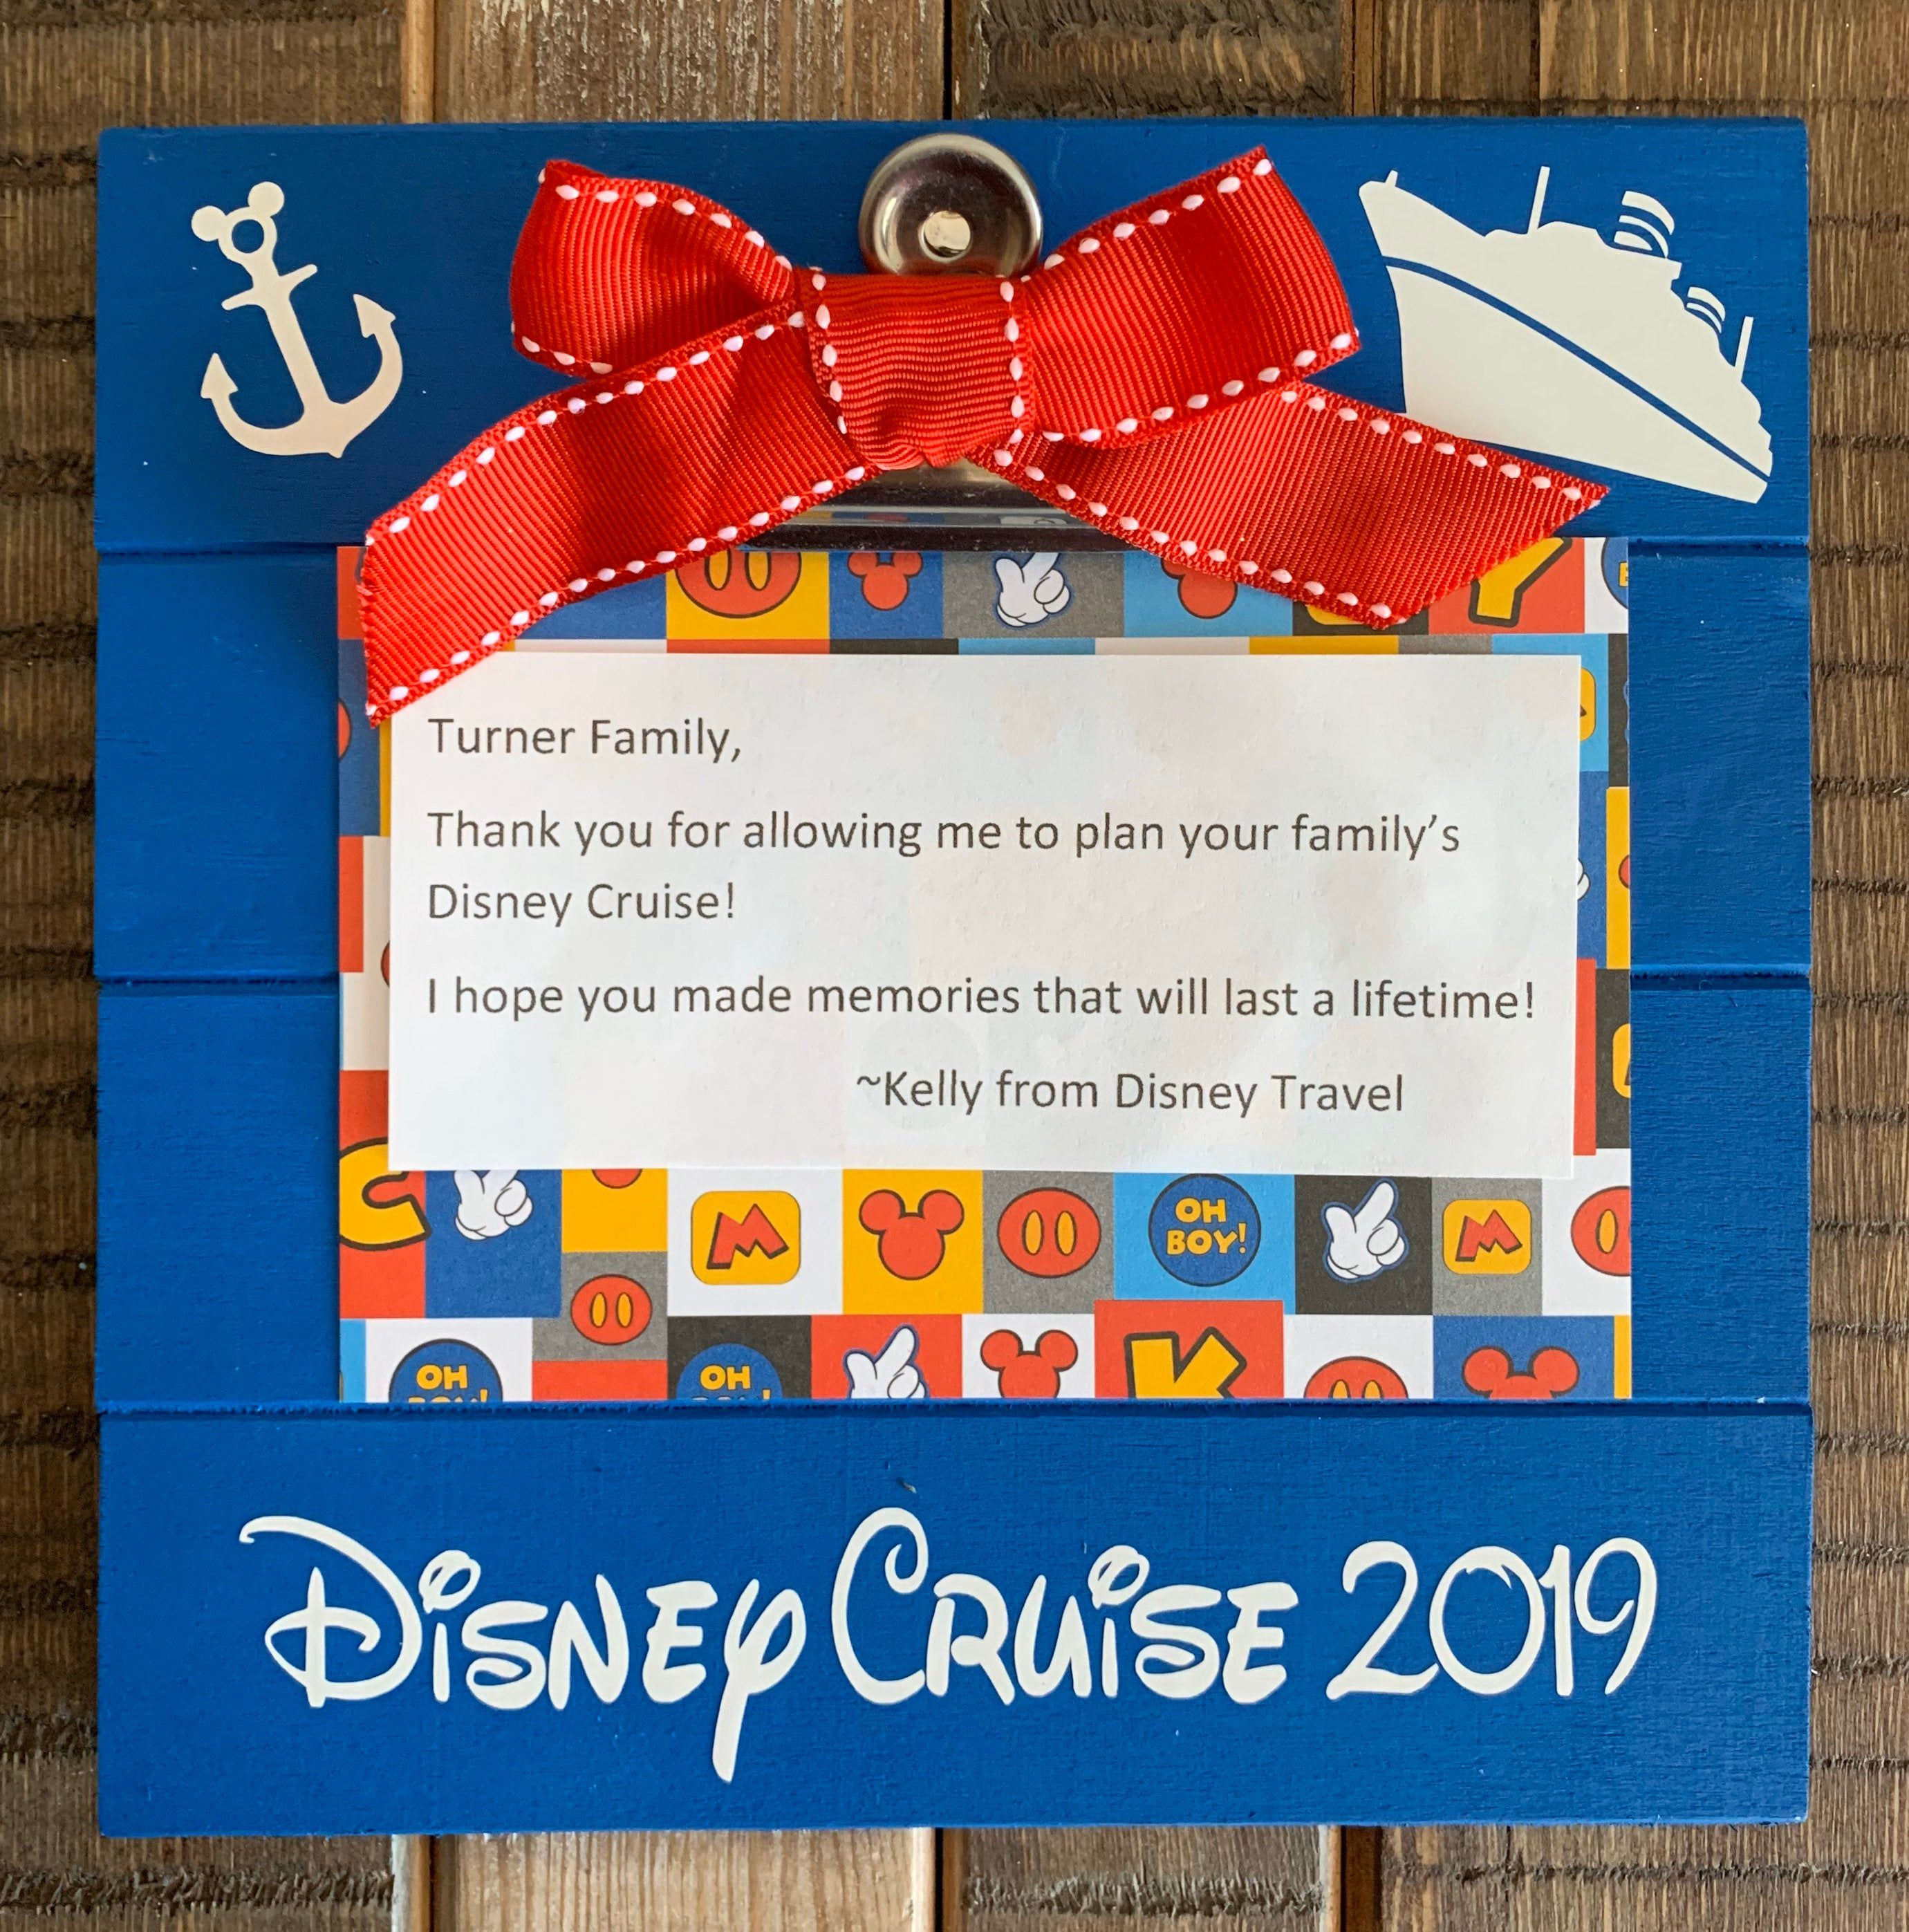 Disney Cruise Wood Frame Hand Painted In Ocean Blue With Mickey Anchor And Cruise Ship Disney Travel Gift Disney Travel Agents Disney Cruise Disney Gift